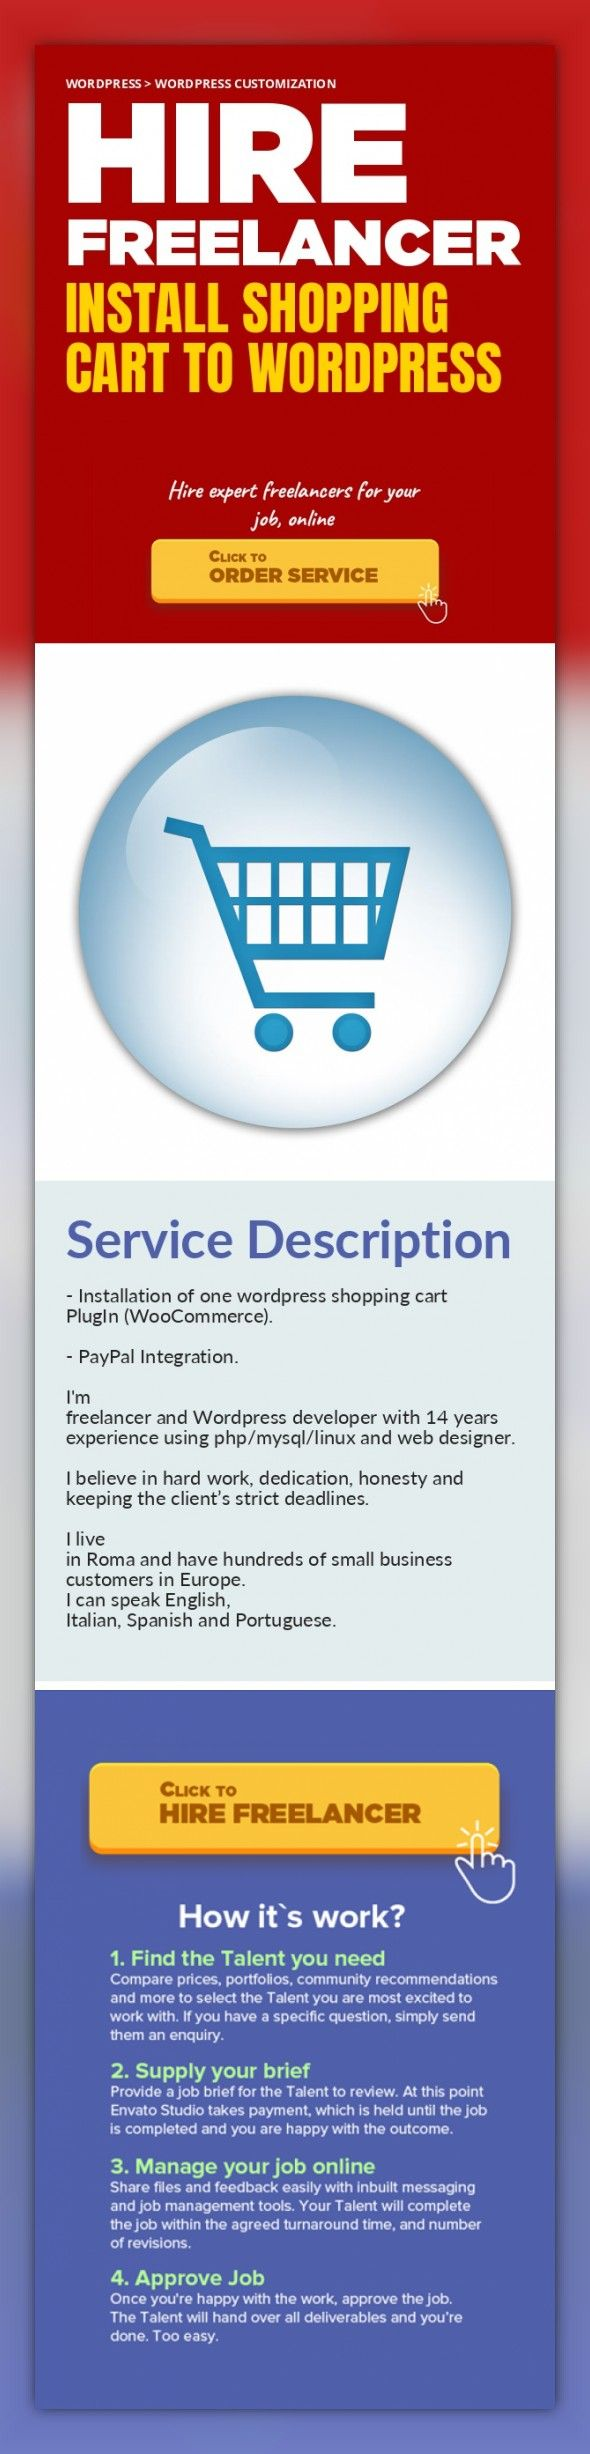 Install Shopping Cart to Wordpress WordPress, WordPress Customization   - Installation of one wordpress shopping cart PlugIn (WooCommerce).    - PayPal Integration.    I'm freelancer and Wordpress developer with 14 years experience using php/mysql/linux and web designer.   I believe in hard work, dedication, honesty and keeping the client's strict deadlines.    I live in Roma and have hundreds o...